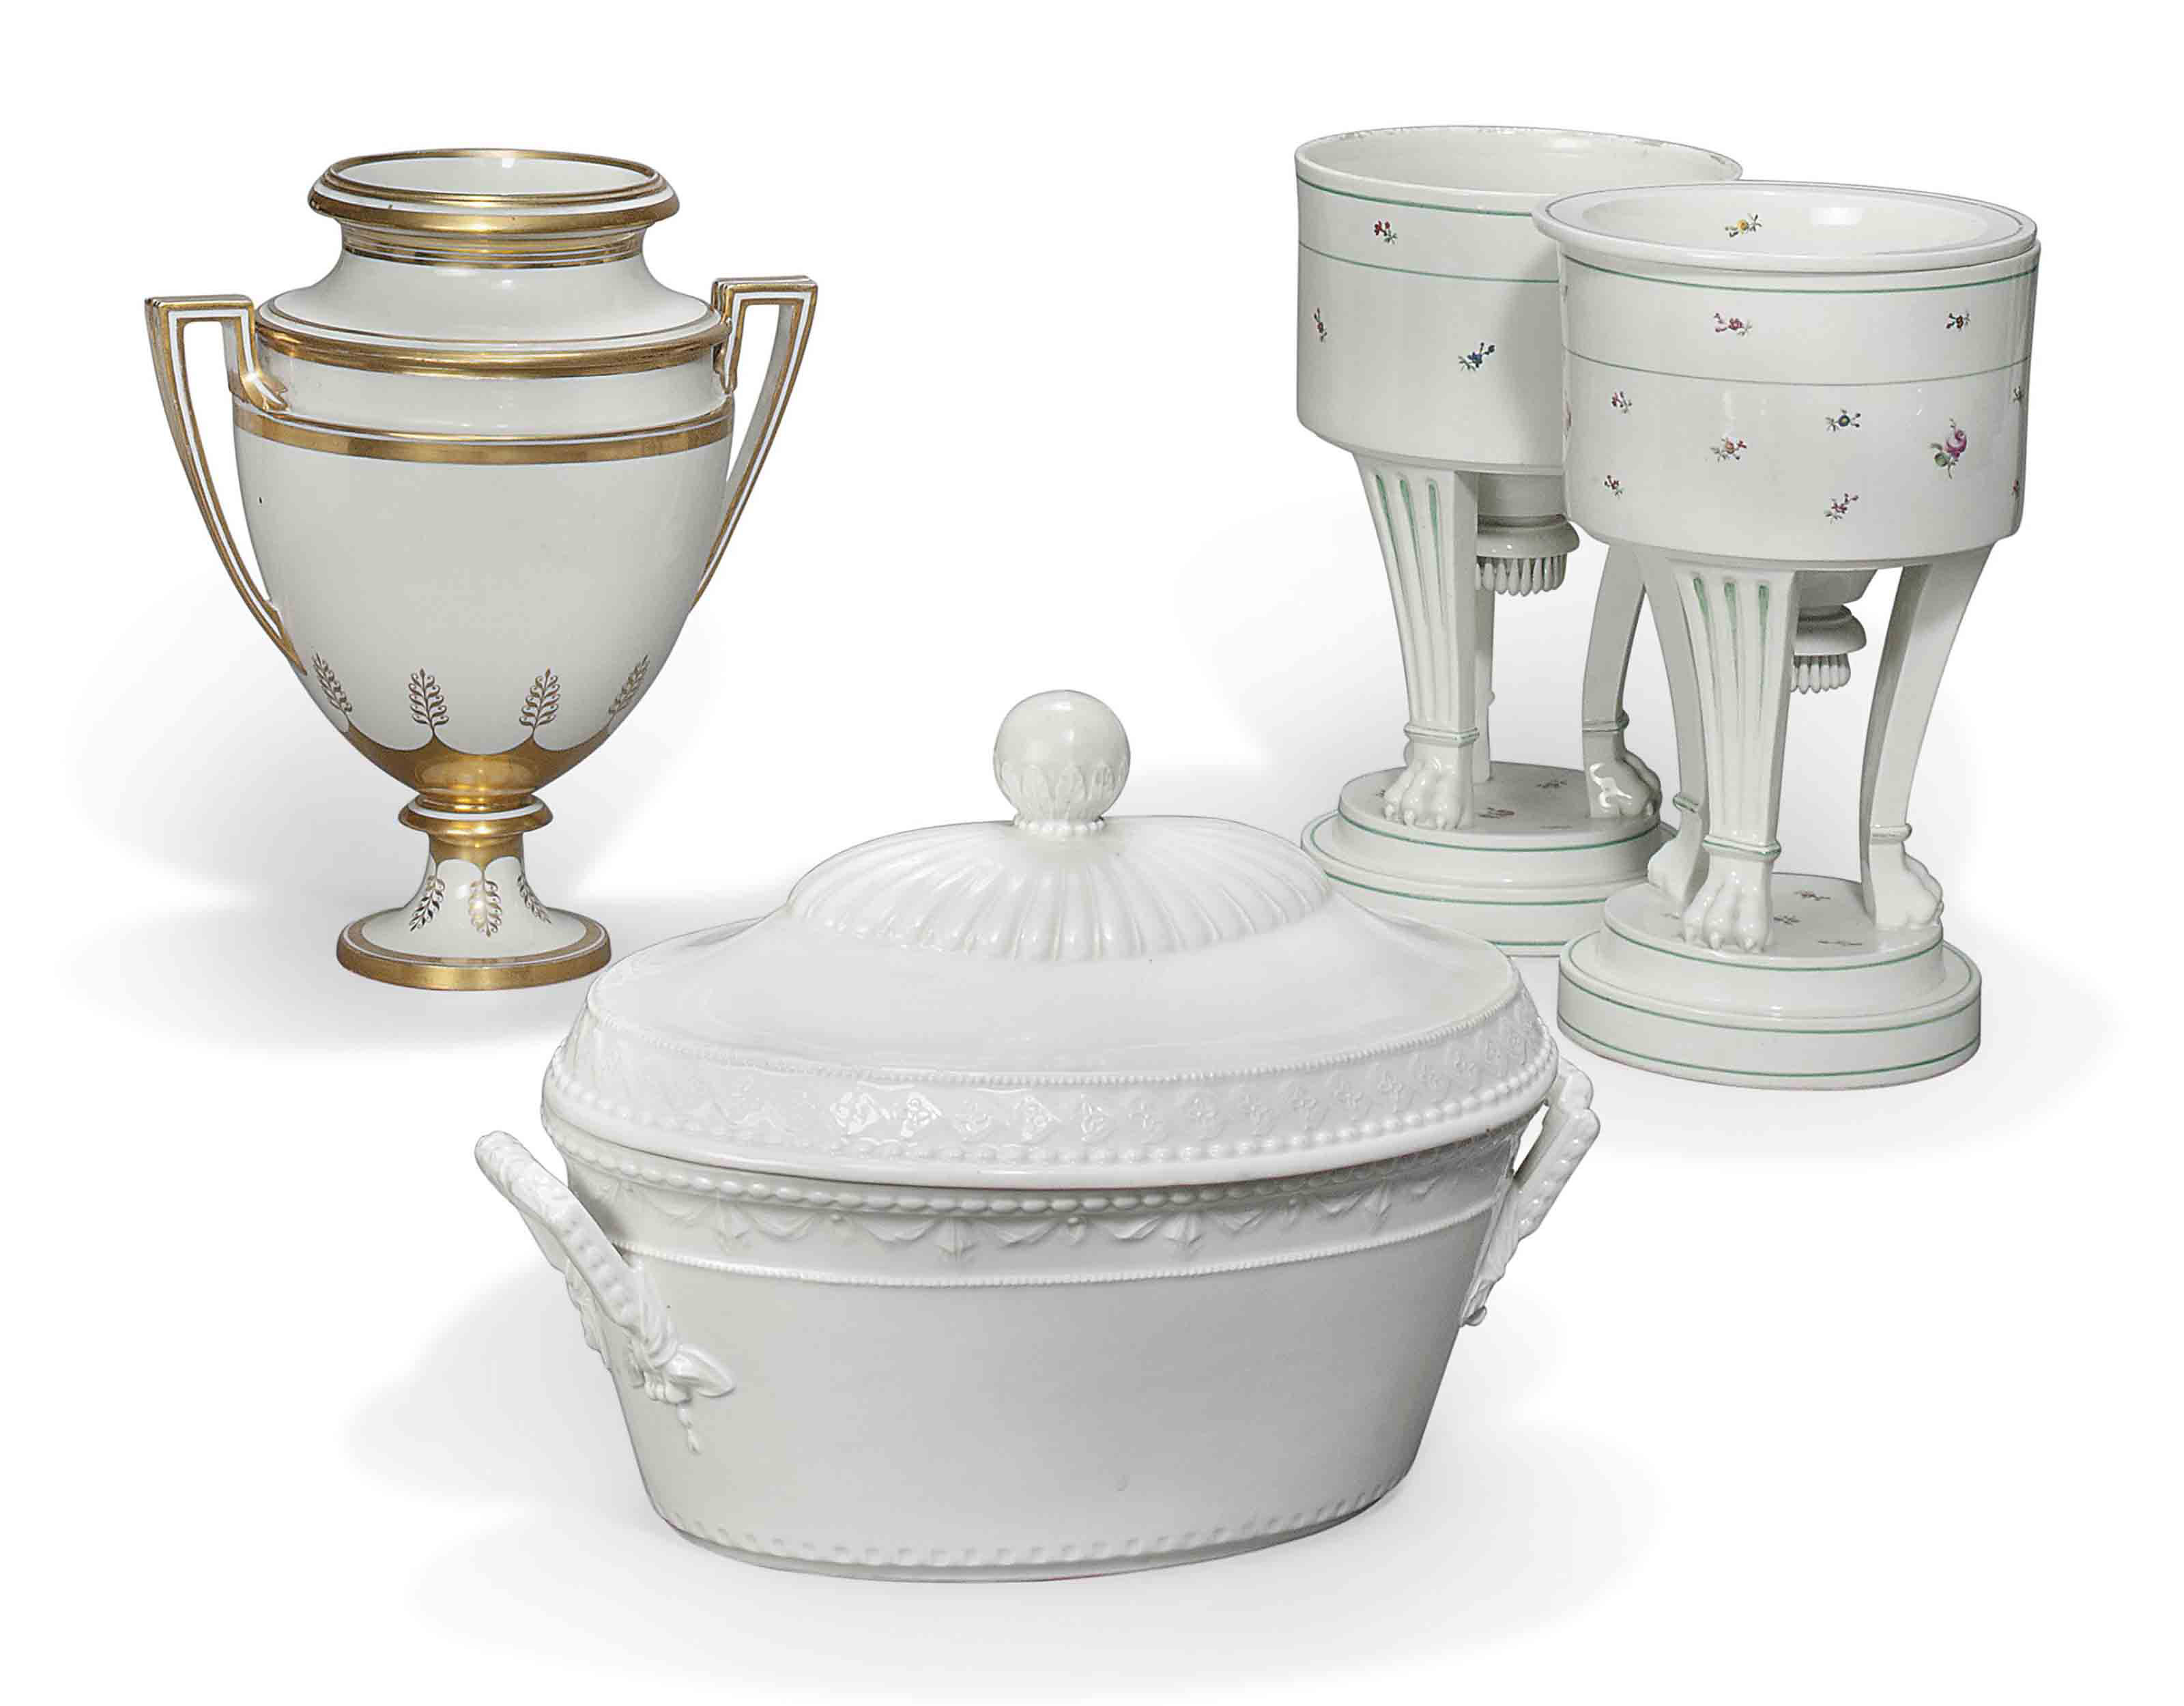 A PAIR OF VIENNA ICE-PAILS, AN